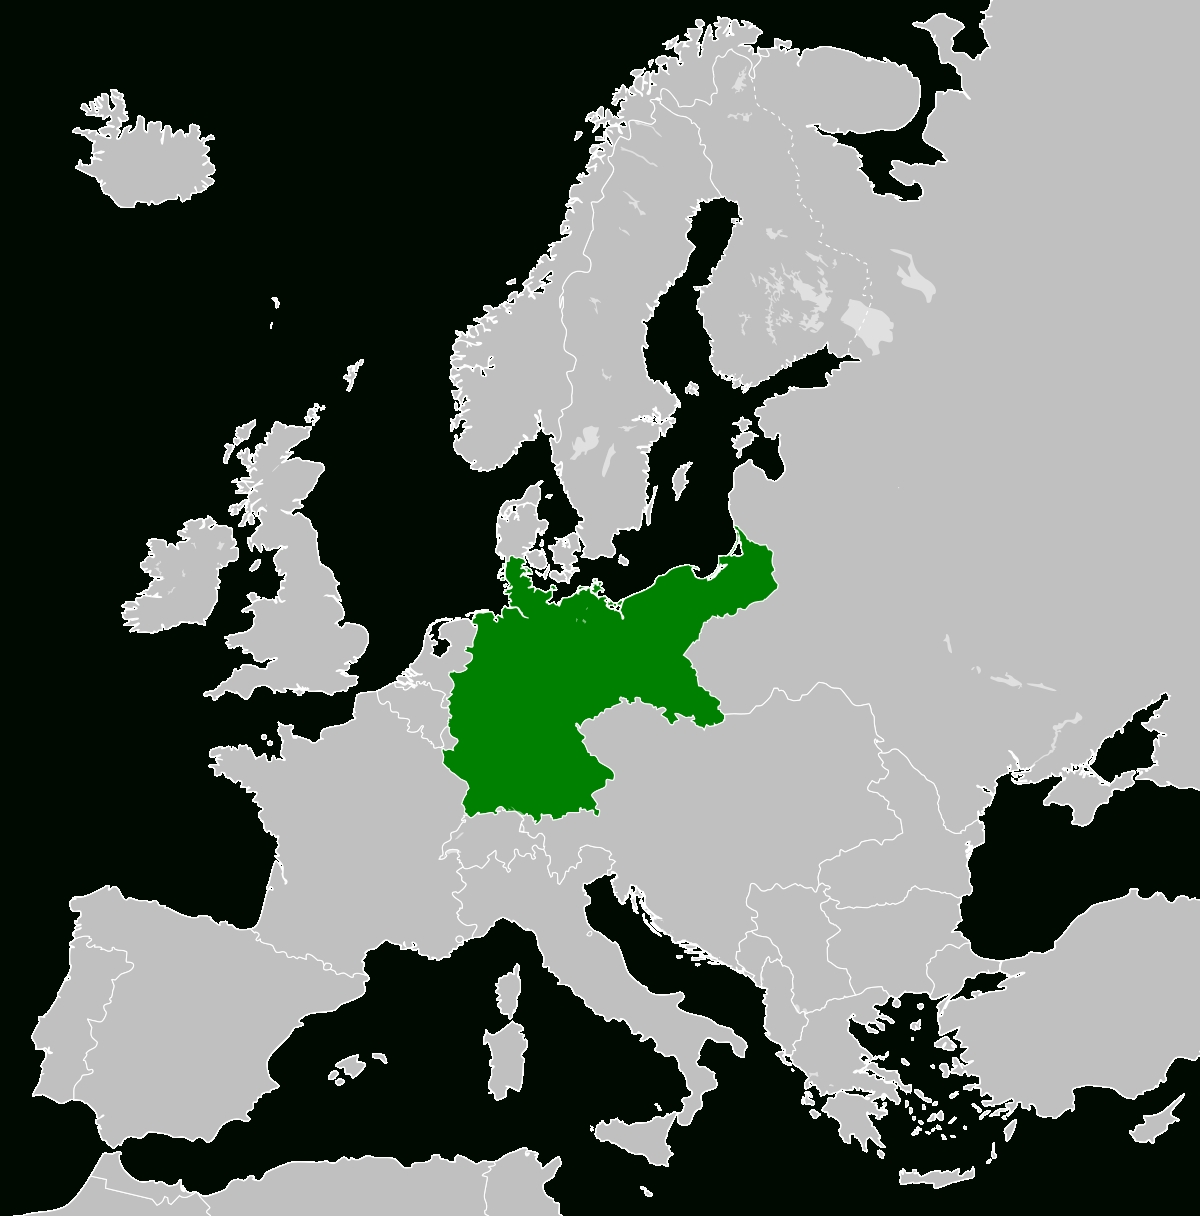 Territorial Evolution Of Germany - Wikipedia inside German Territory Before And After Ww2